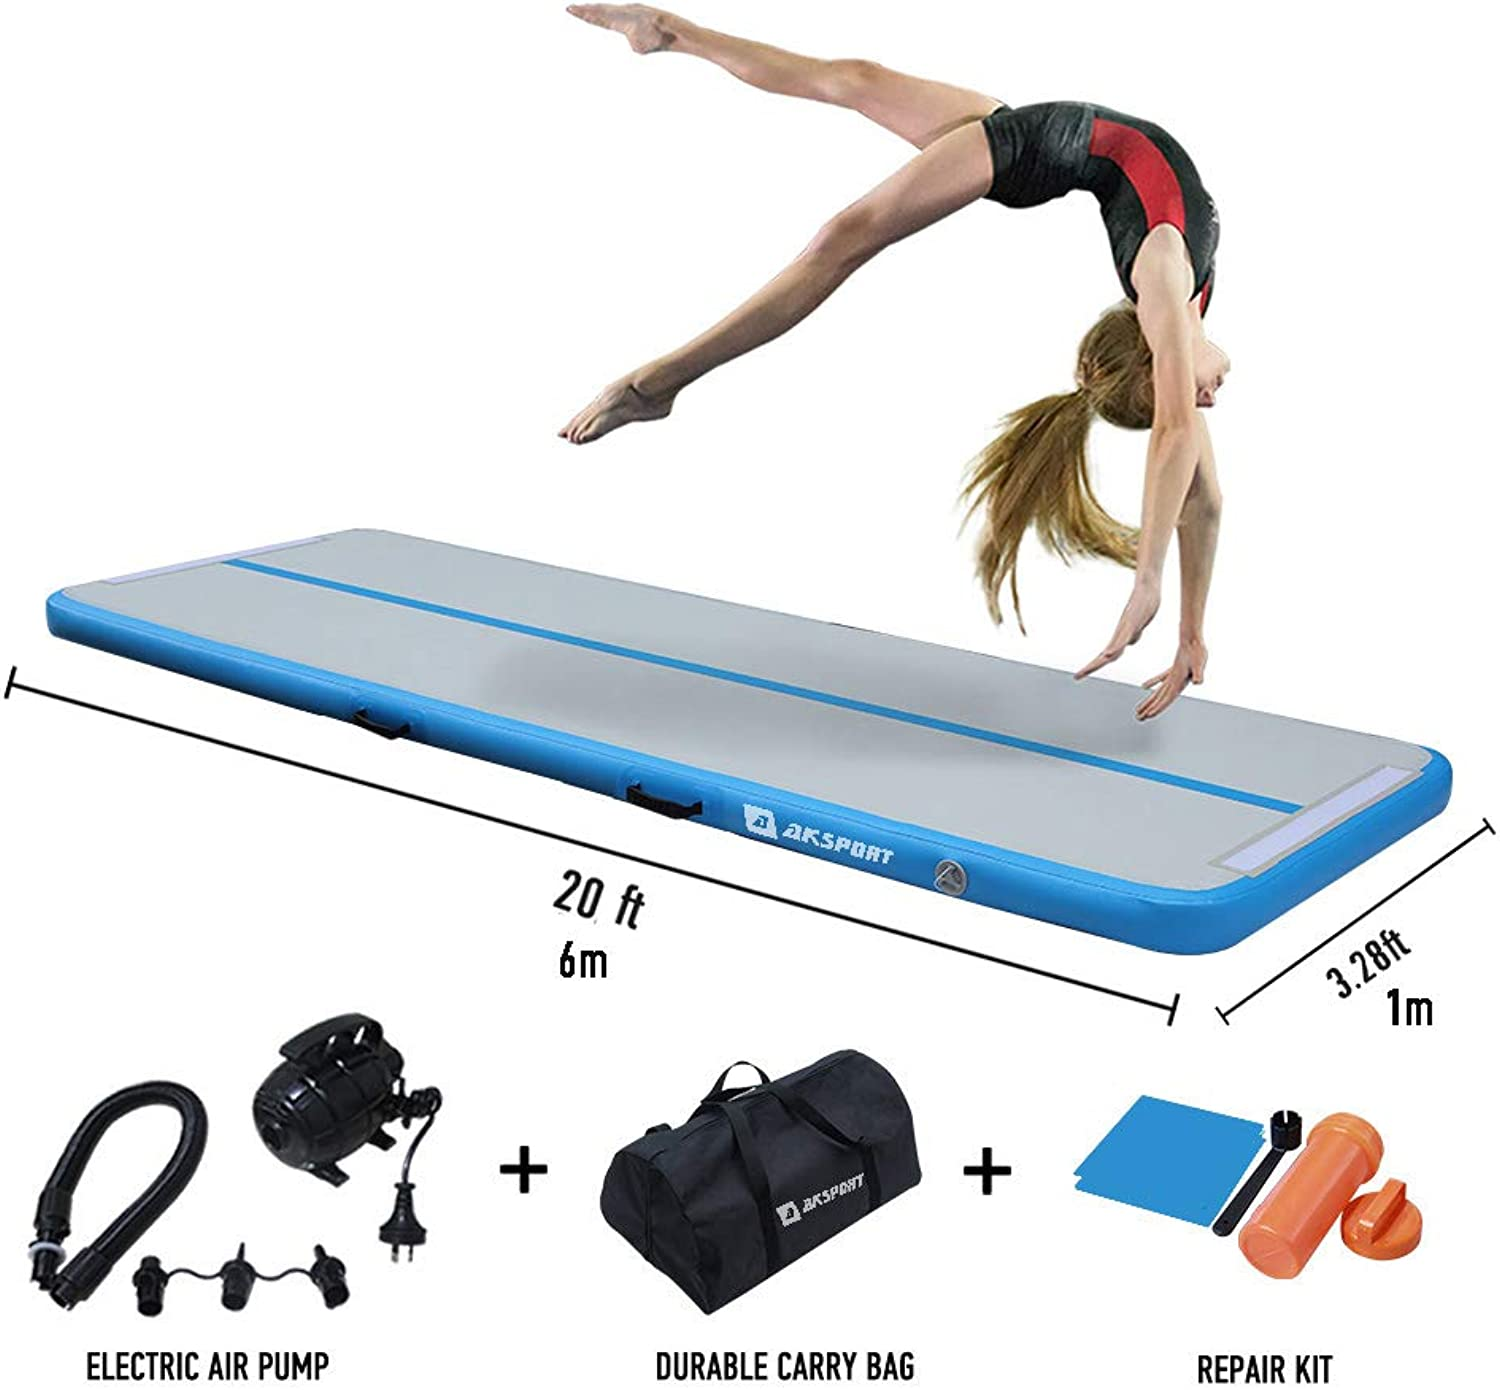 10ft 20ft Air Track, Inflatable Gymnastics Tumbling Air Track Mat with Electric Air Pump for Cheerleading Practice Gymnastics